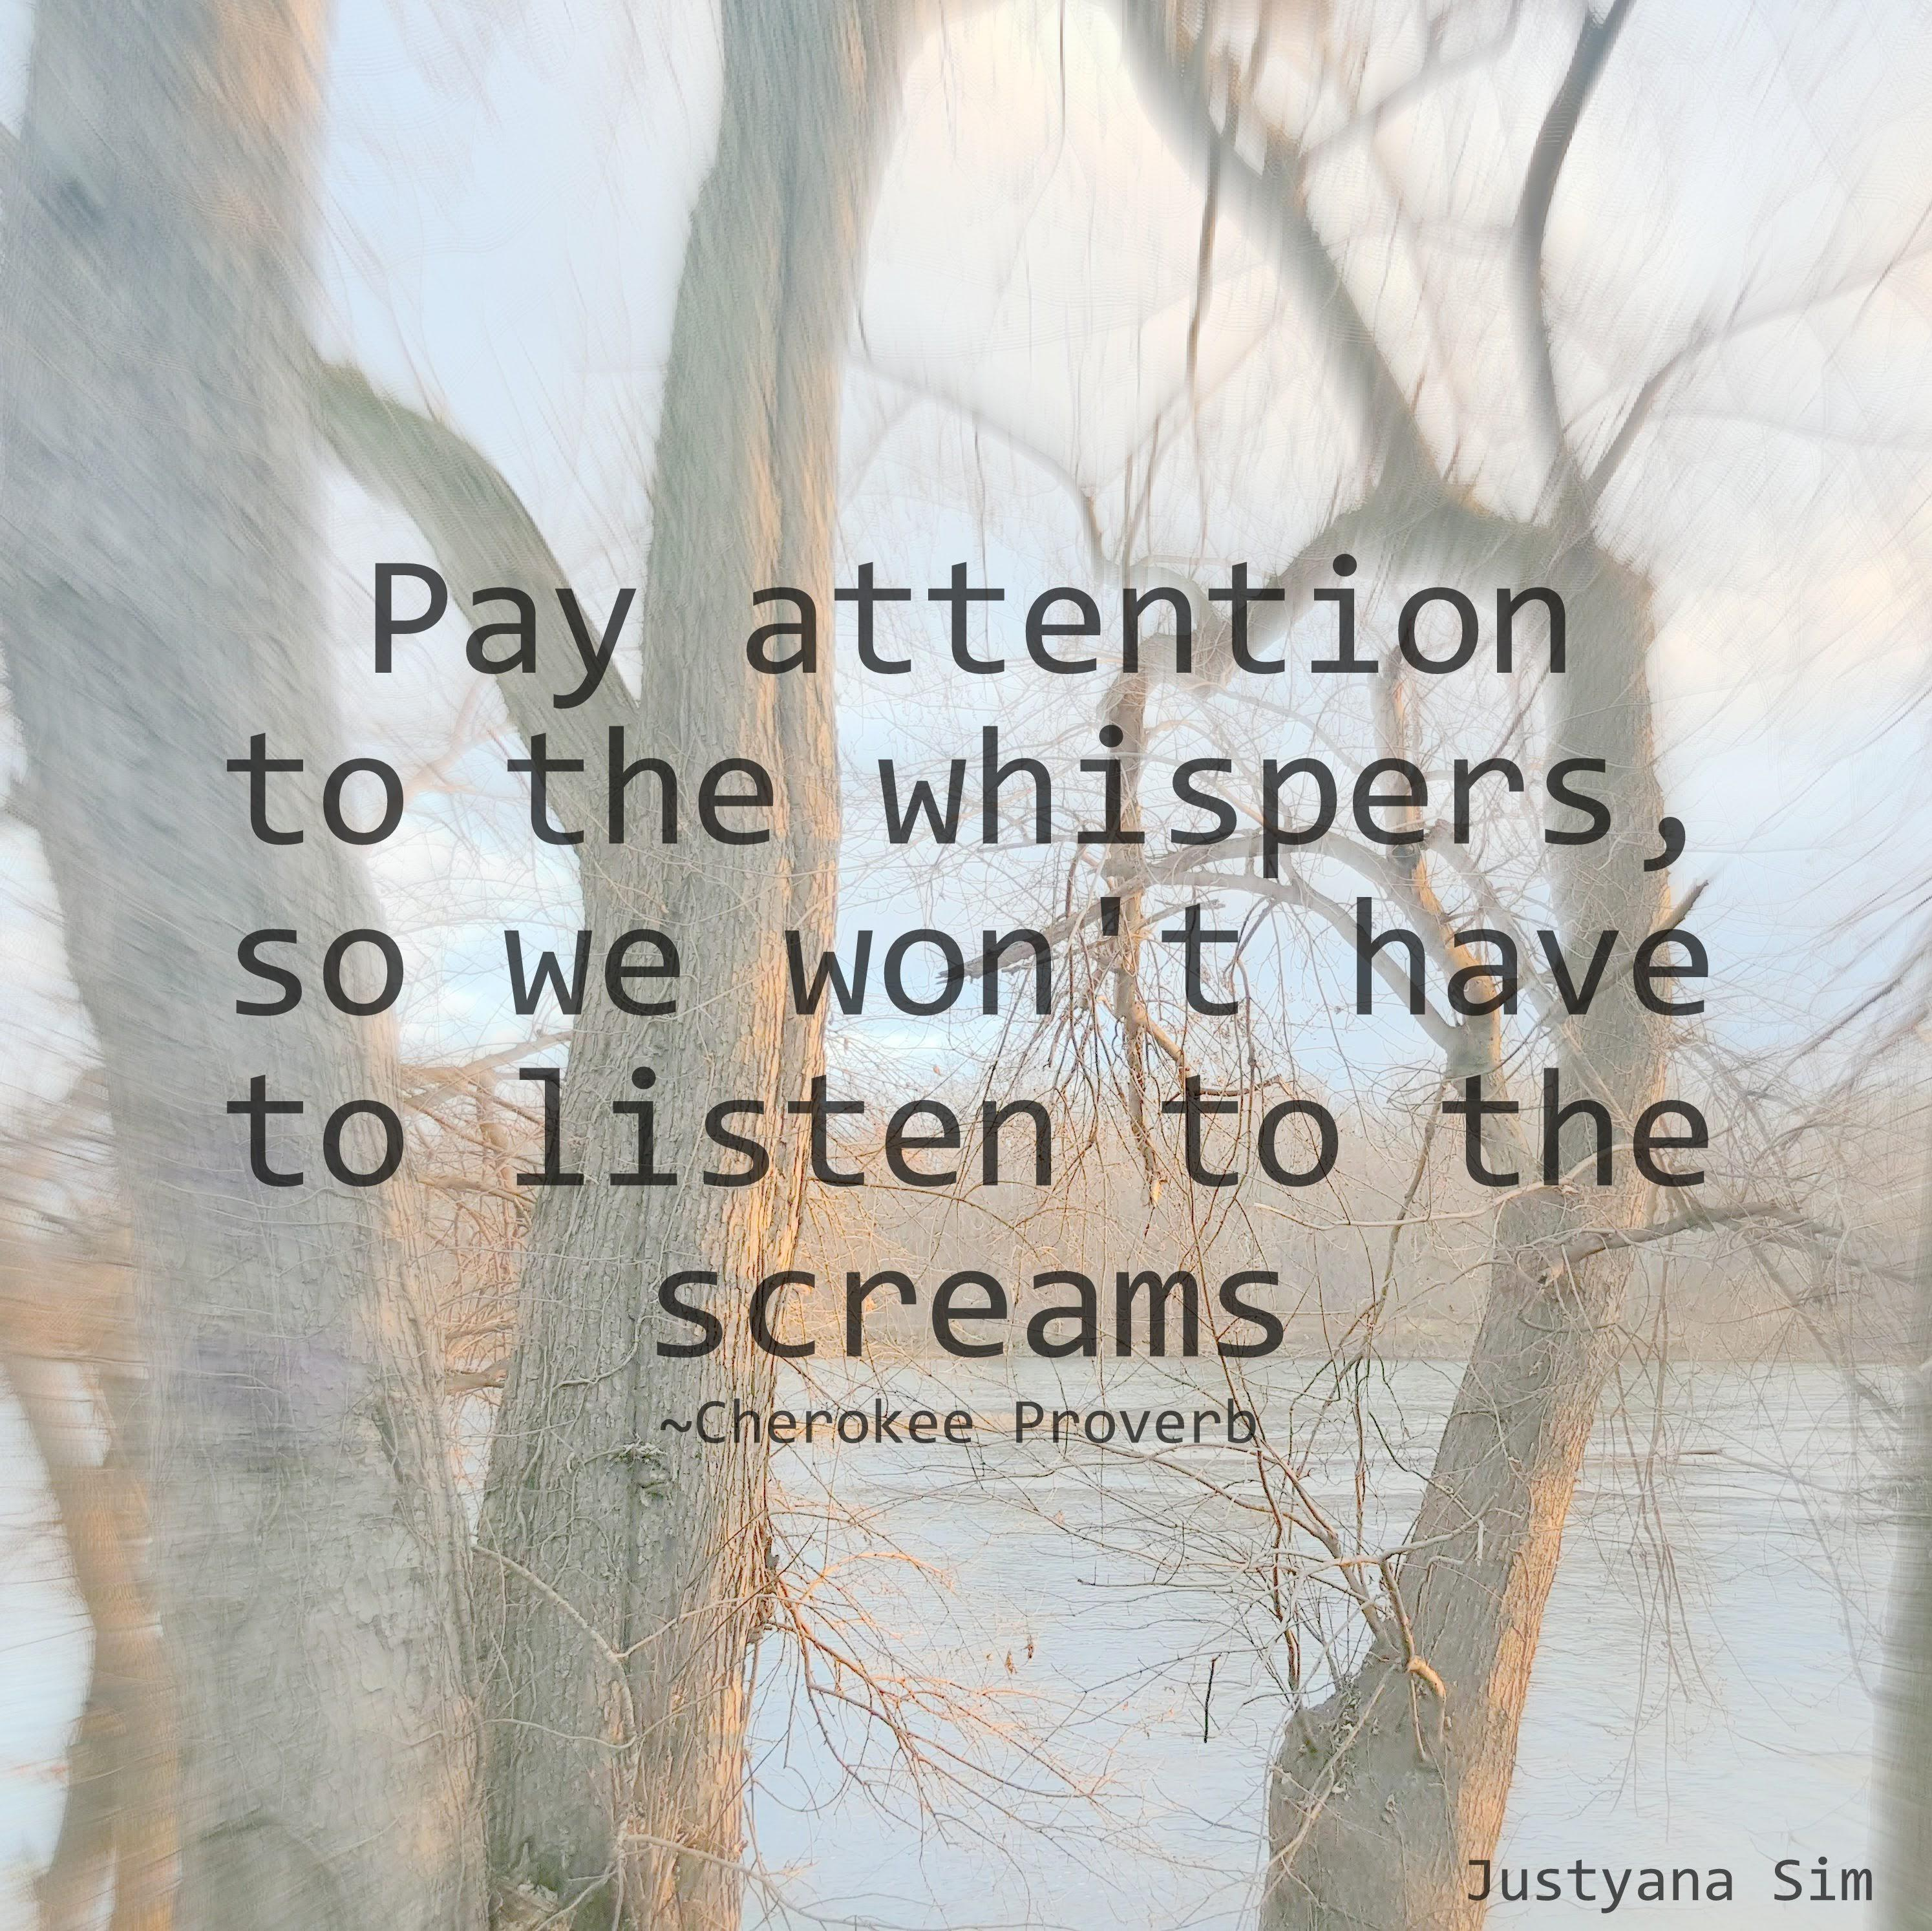 Pay attention to the whispers, so we won't have to listen to the screams. -Cherokee proverb (2989×2988)